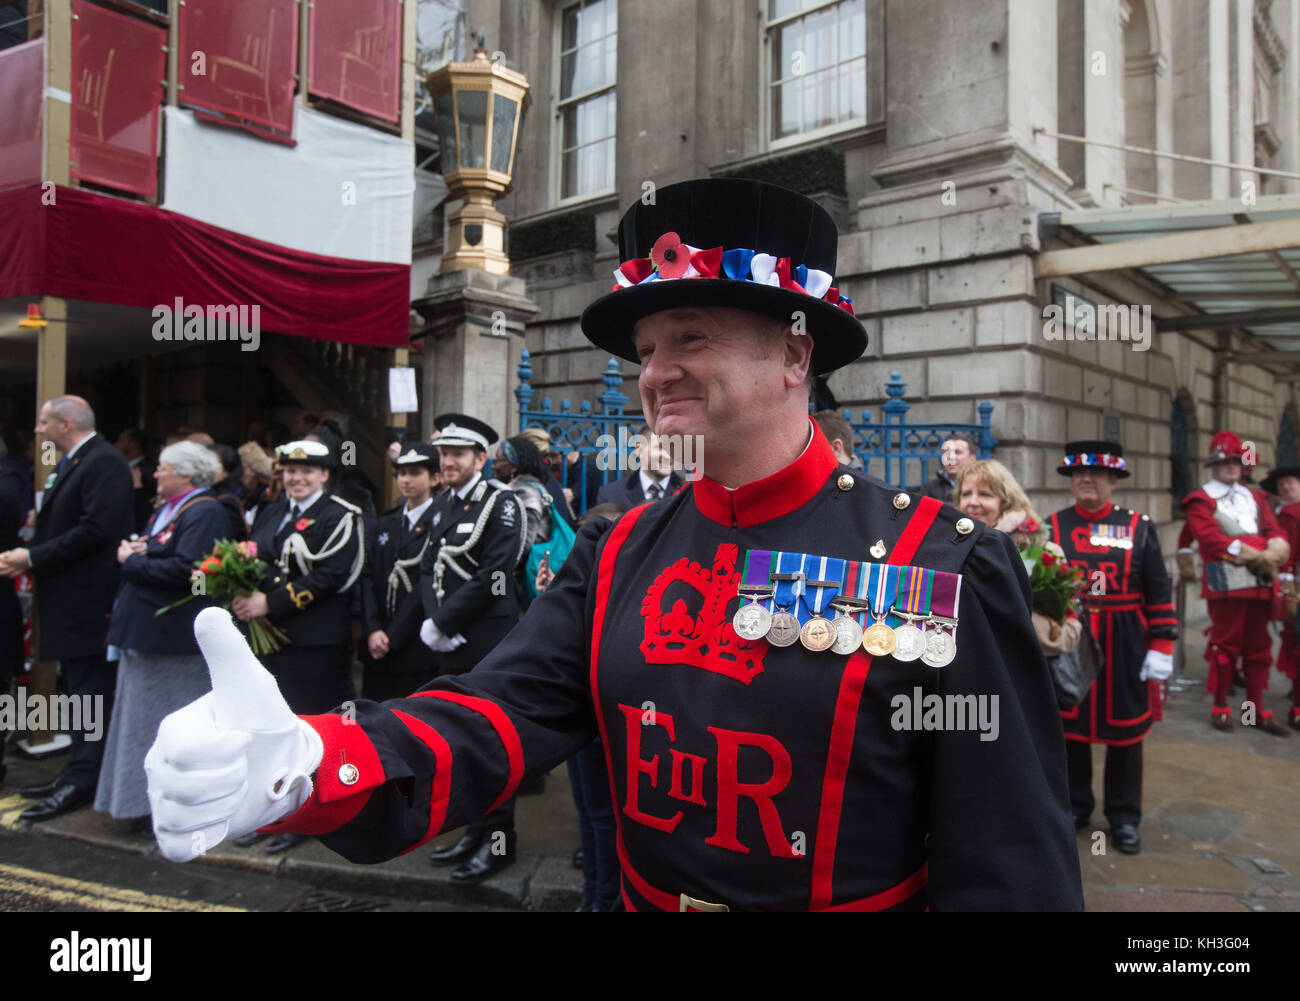 A Beefeater gives the thumbs up at the Lord Mayor's Show at the mansion House in the City of London. Charles - Stock Image